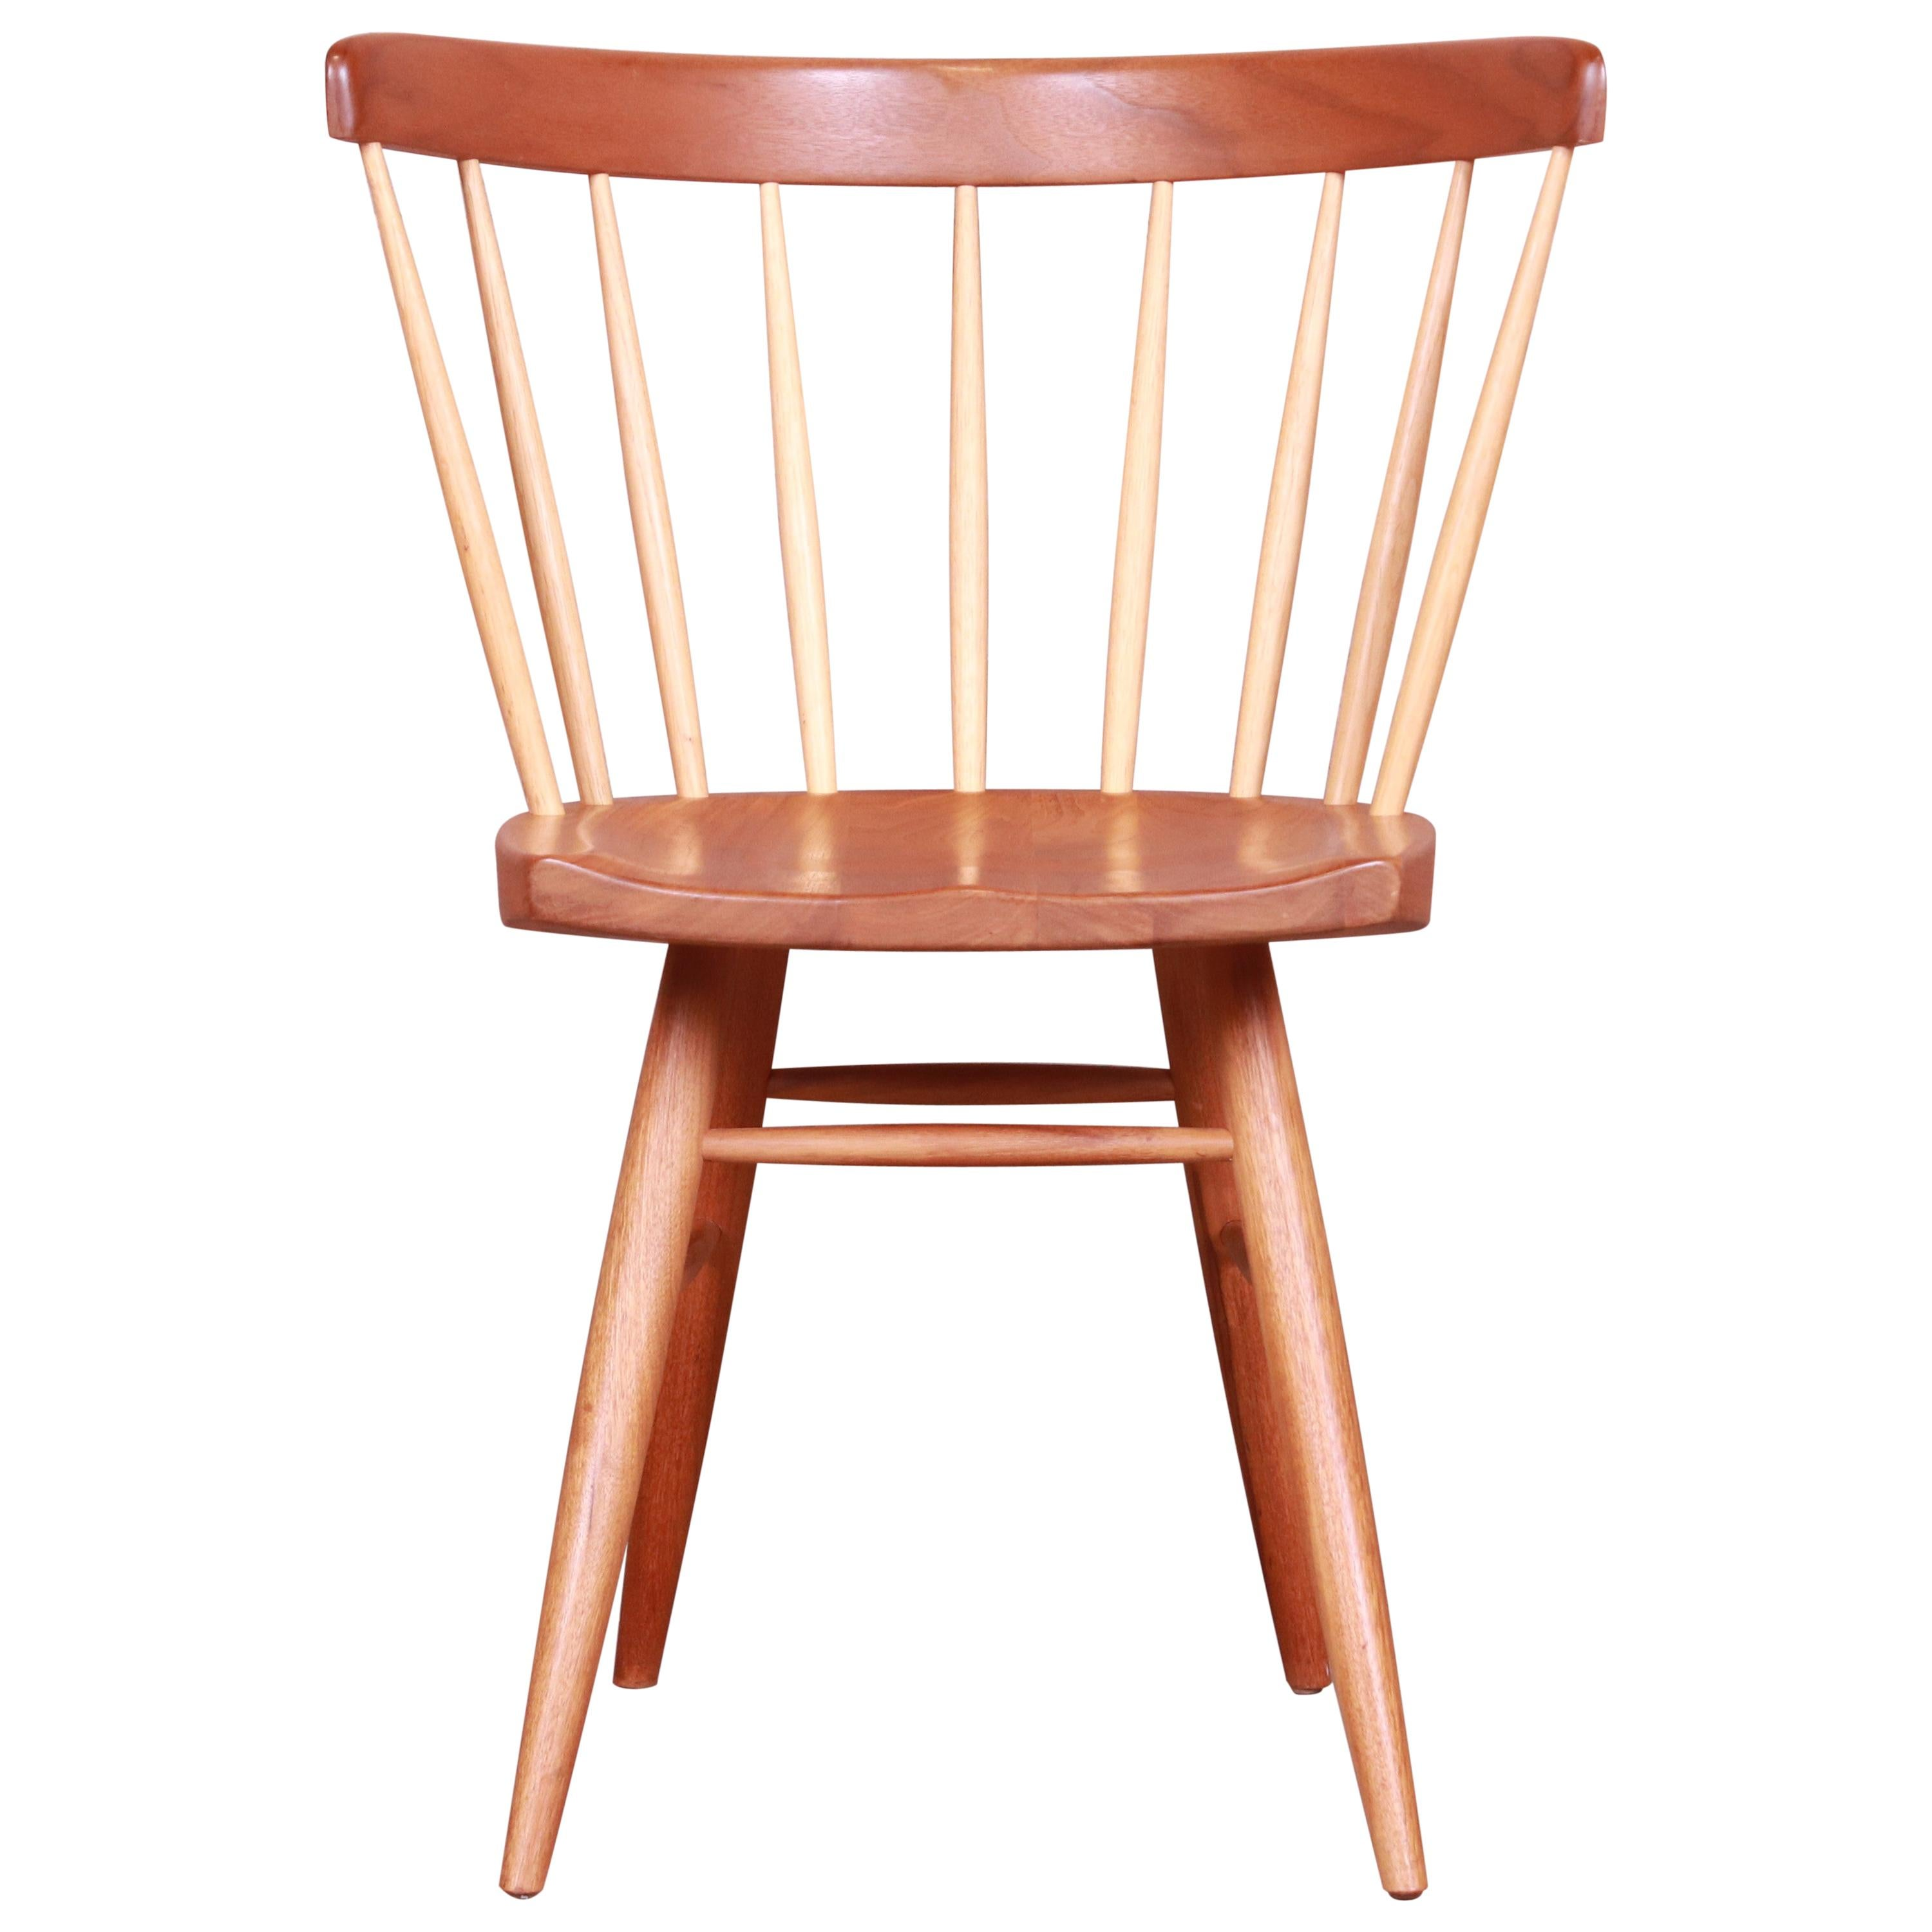 George Nakashima for Knoll Walnut and Hickory Windsor Straight Chair